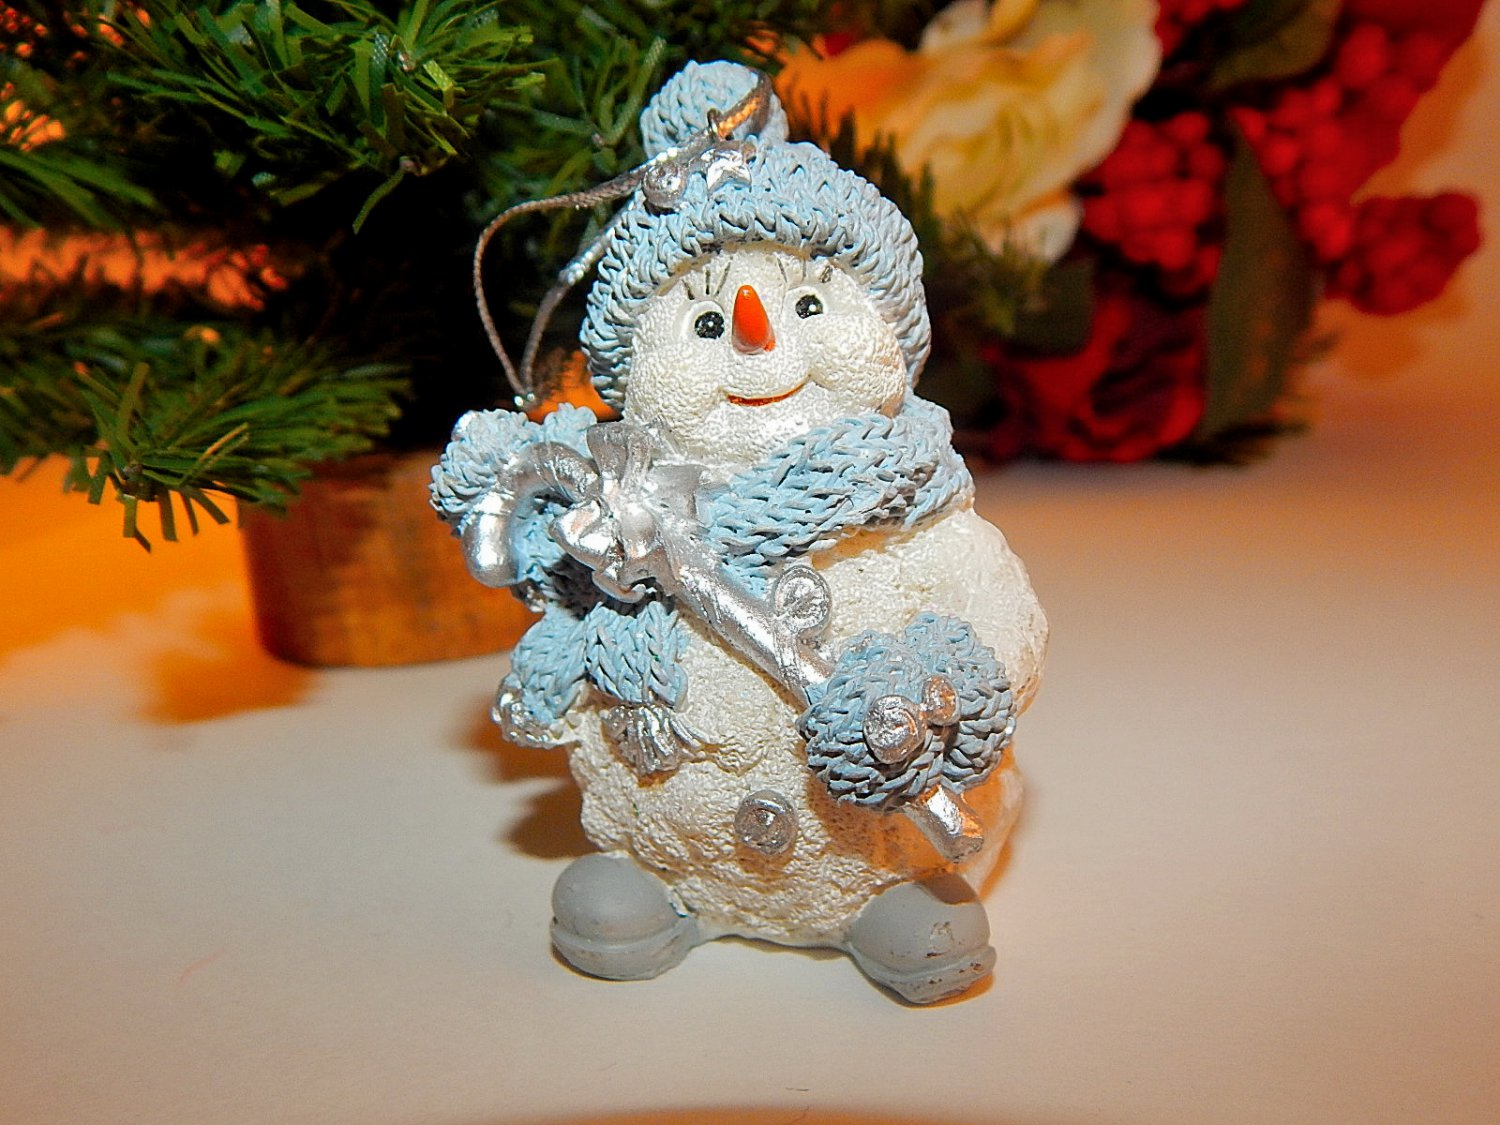 snowman christmas tree ornament blue white and silver resin figurine winter decoration - Snowman Christmas Tree Decorations